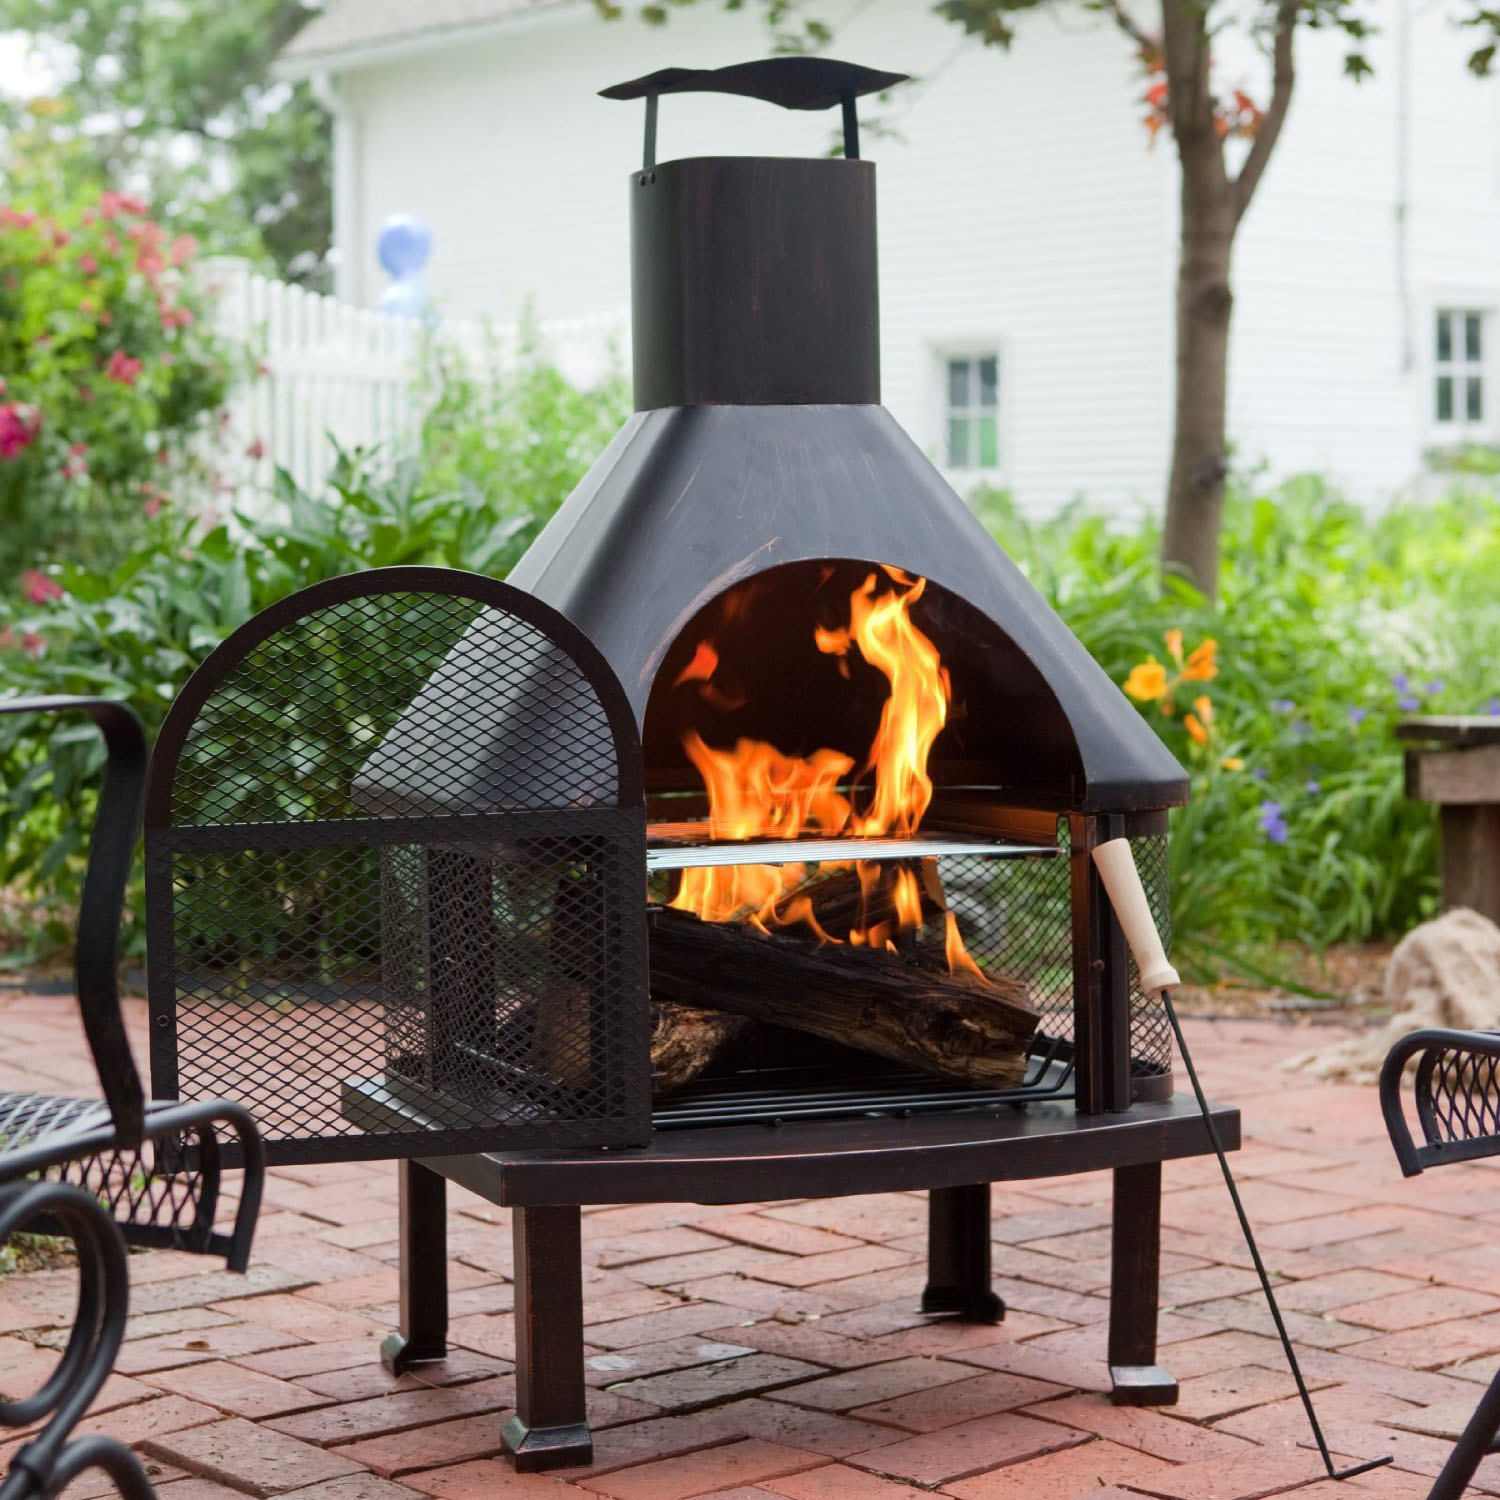 Outdoor Fire Pit Chimney Fireplace Design Ideas